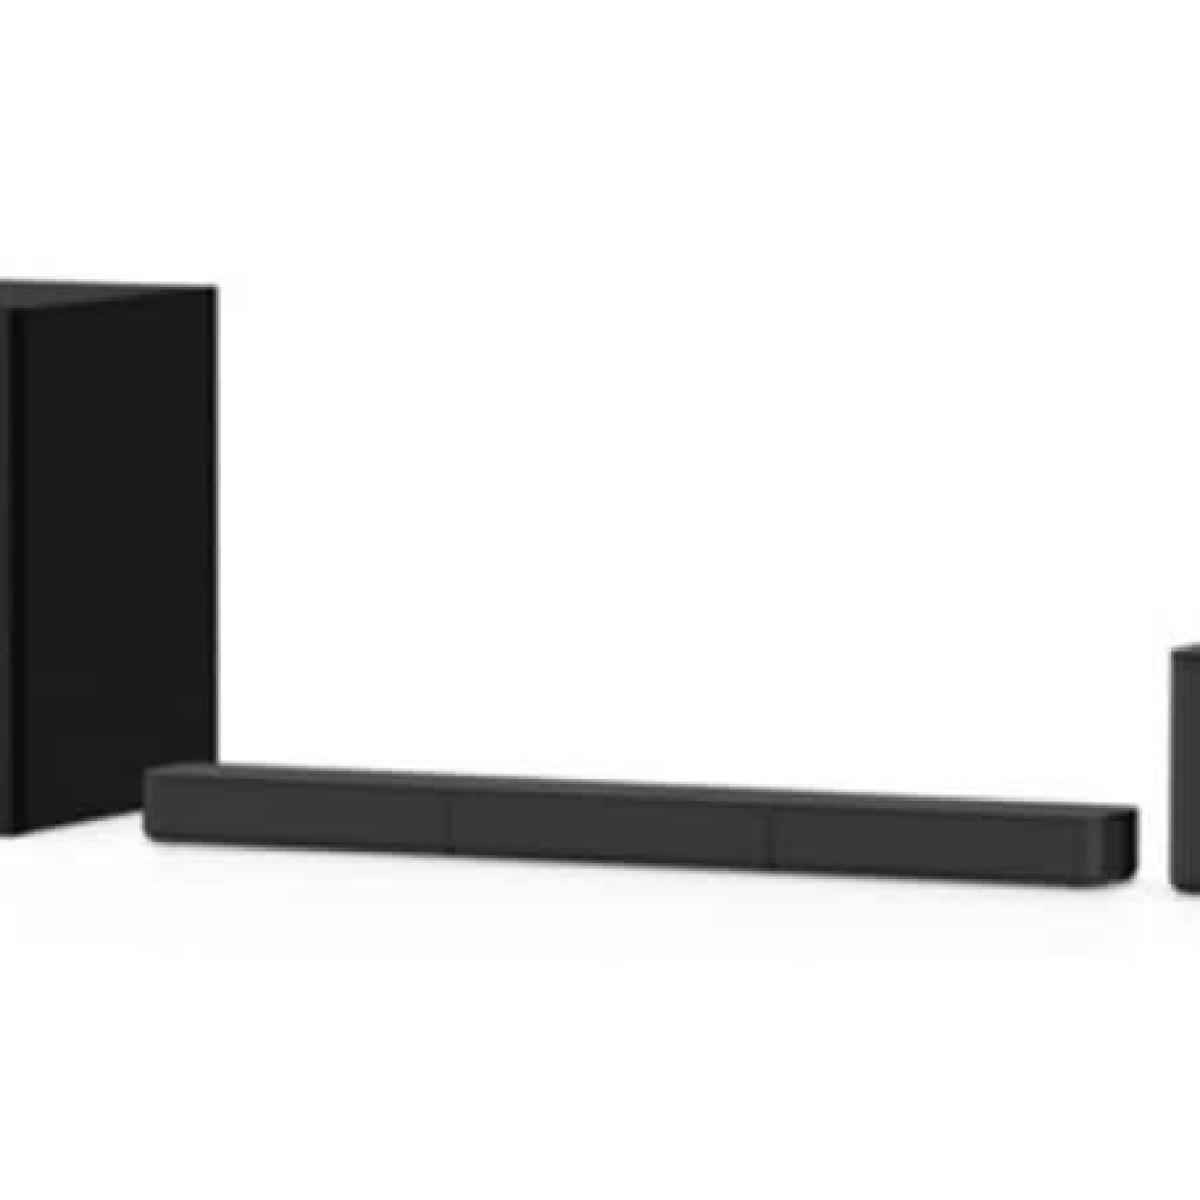 Sony launches entry level soundbar in India